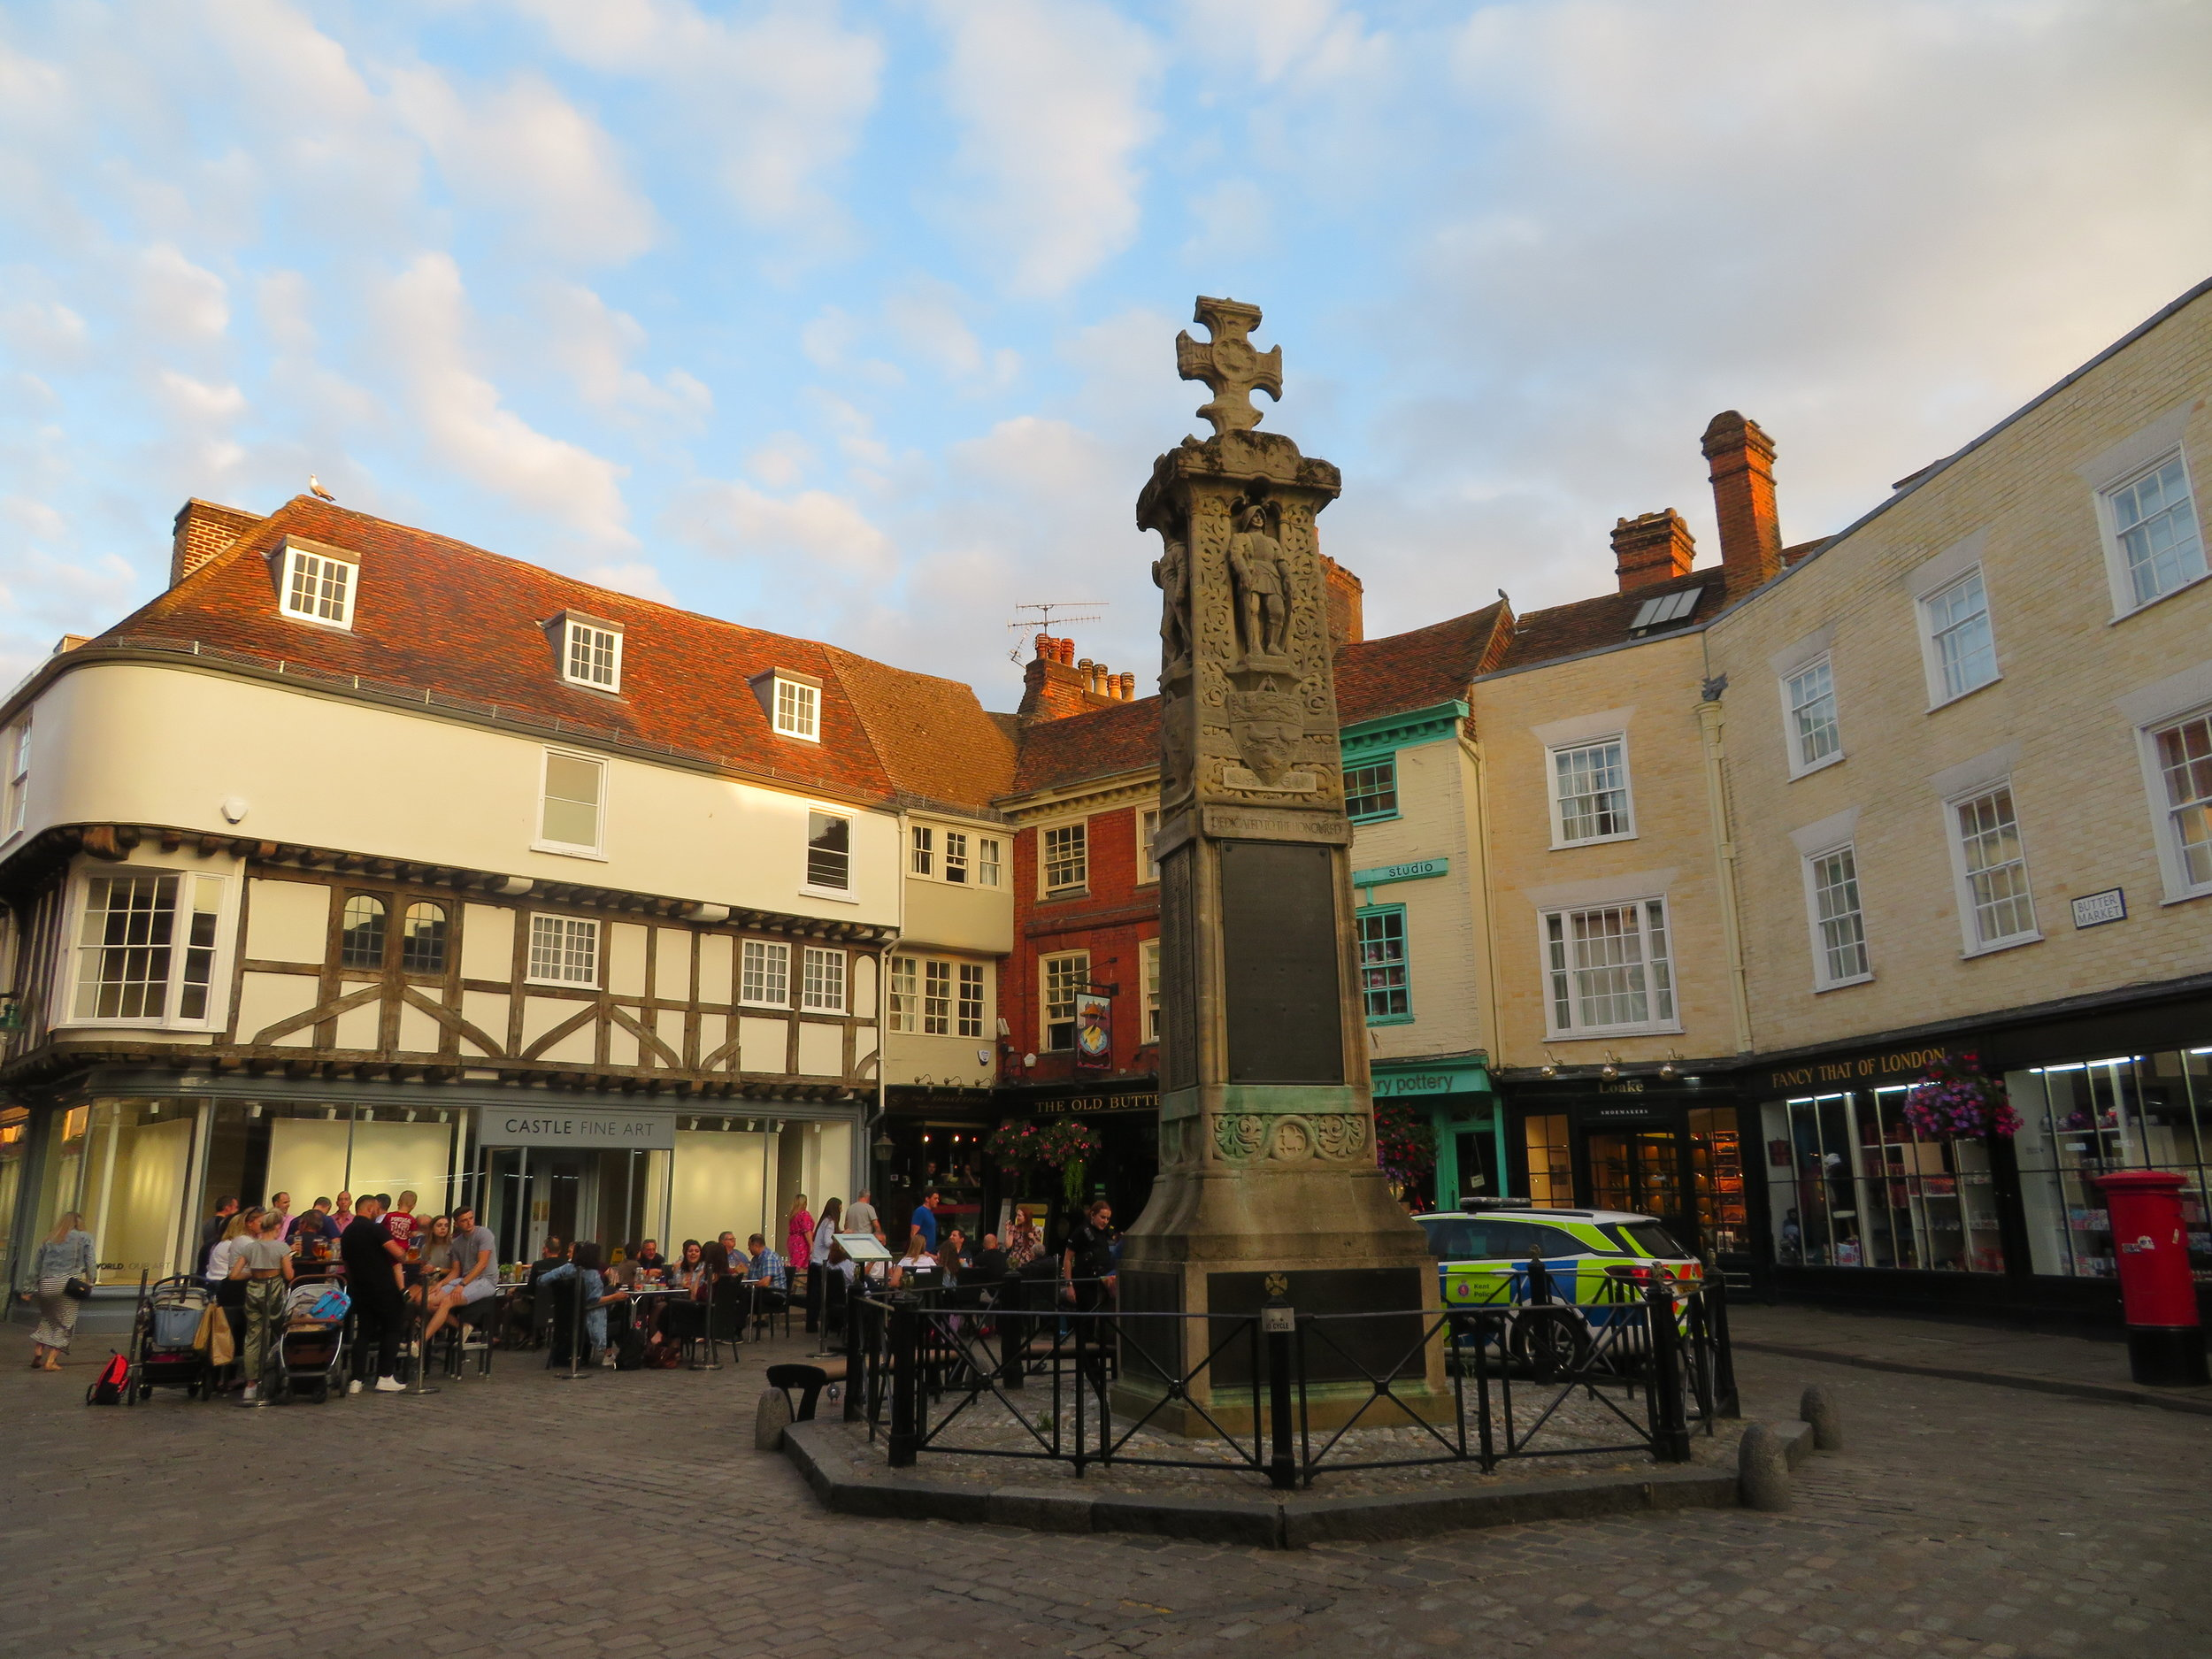 Buttermarket Square and the War Memorial